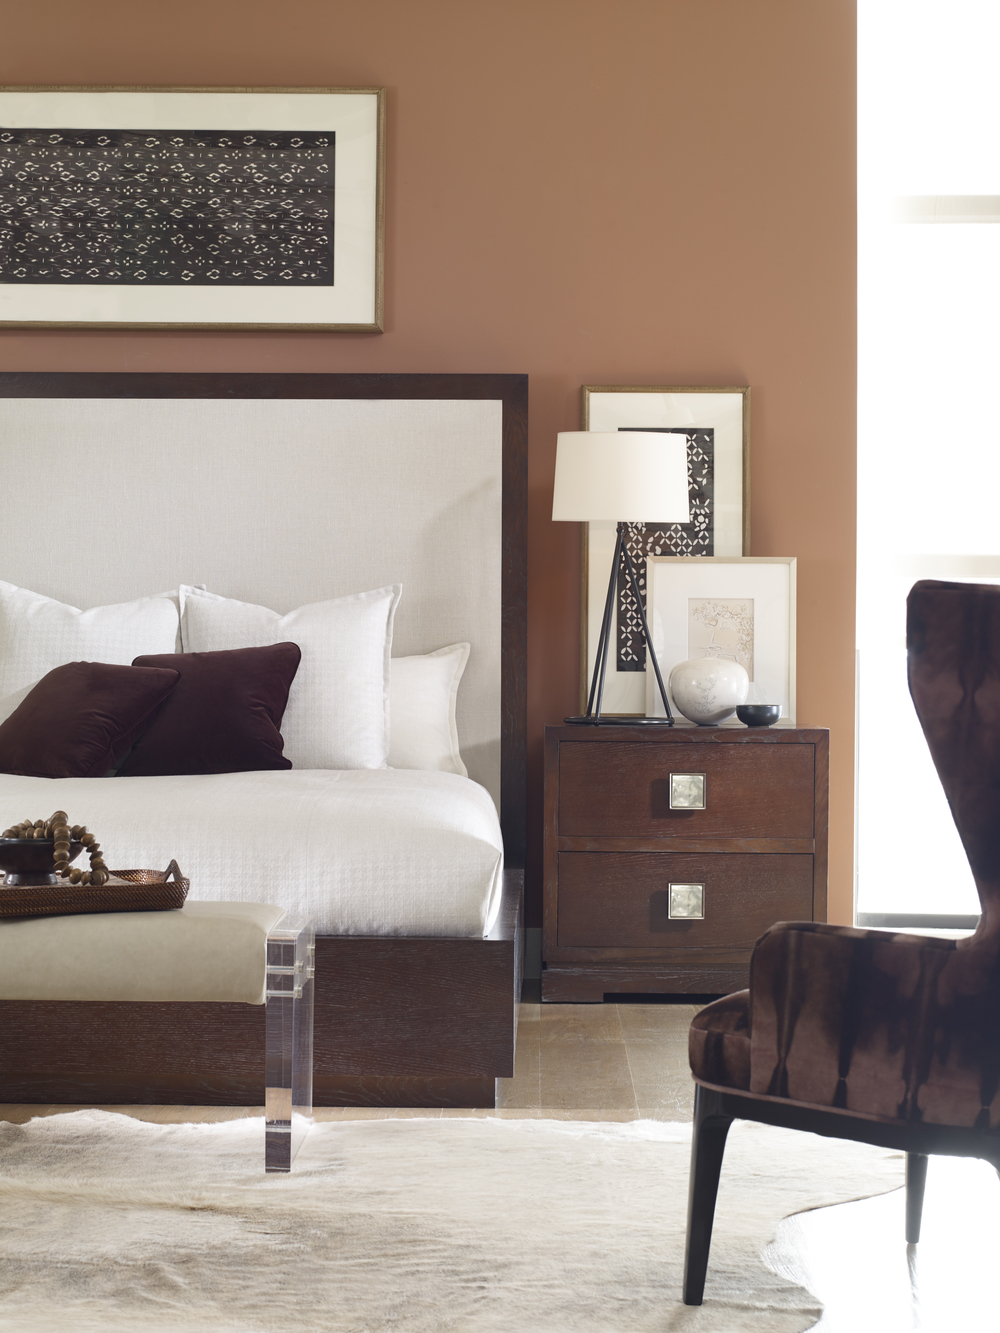 Century Furniture - Corso Bed with Upholstered Headboard